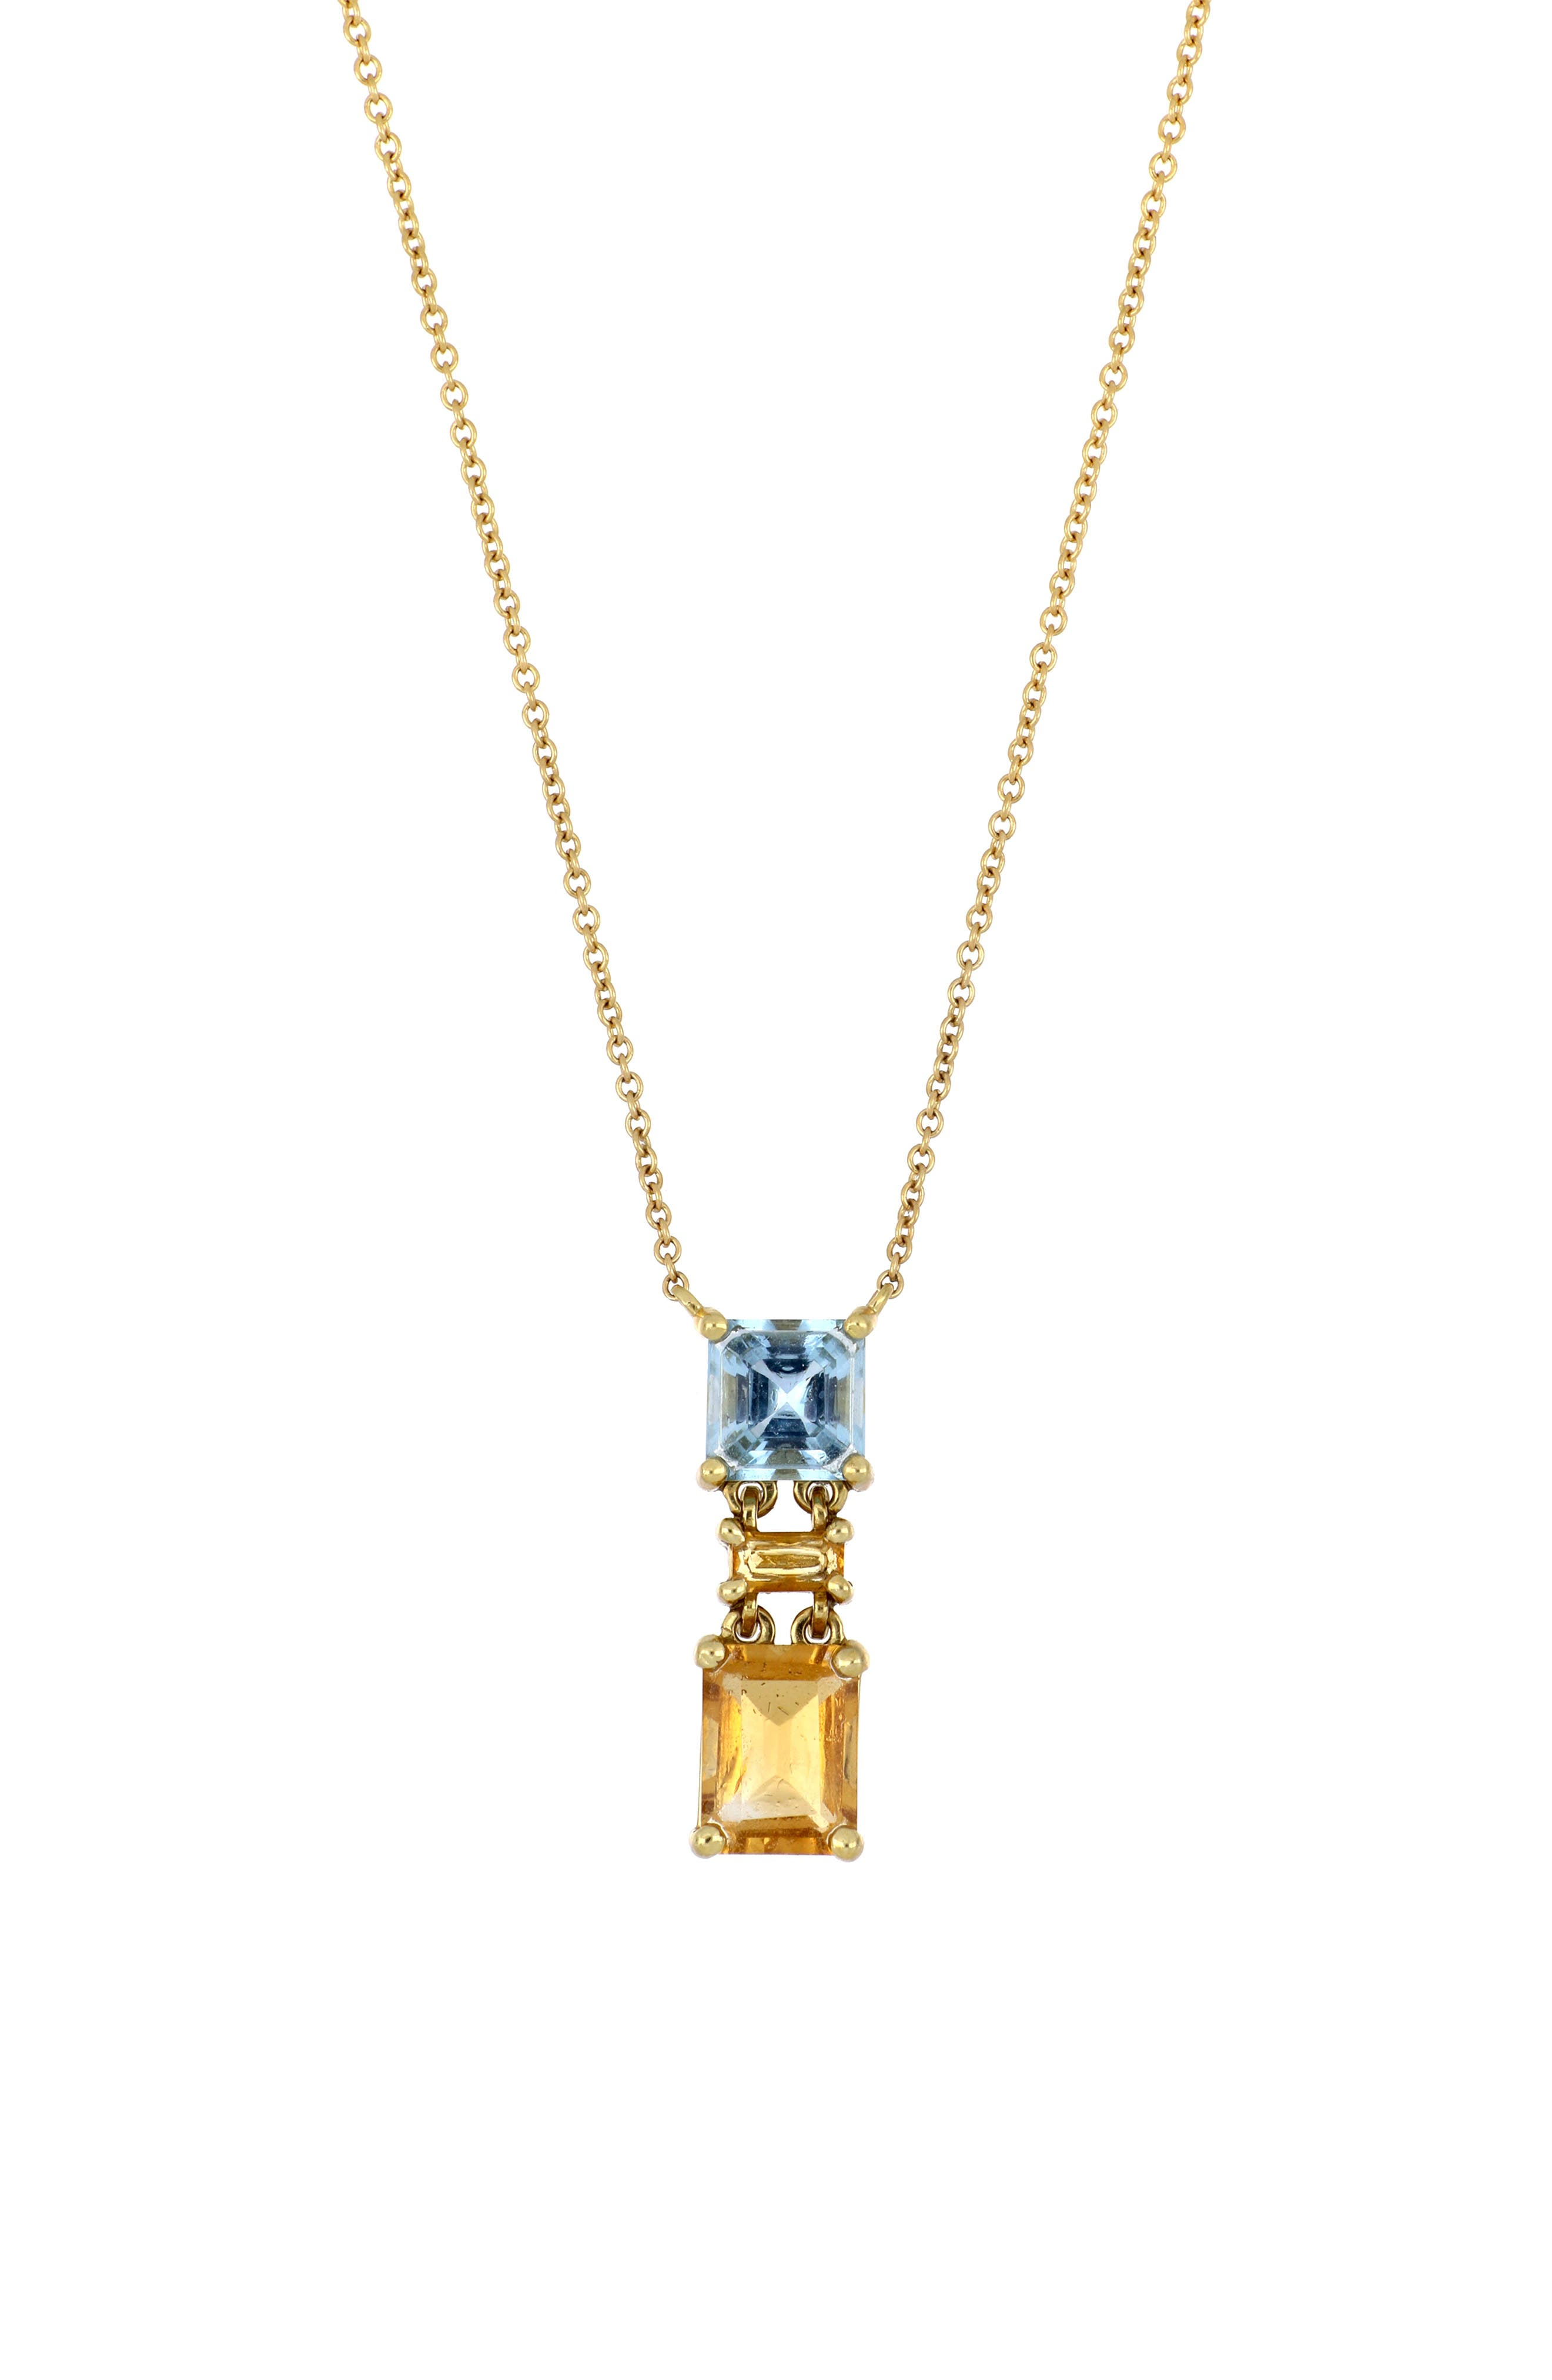 Offering rich color and deep sparkle, a tiered pendant of citrine and aquamarine stones anchors a handcrafted necklace of 18-karat gold. Style Name: Bony Levy Citrine & Aquamarine Pendant Necklace (Nordstrom Exclusive). Style Number: 6064106. Available in stores.